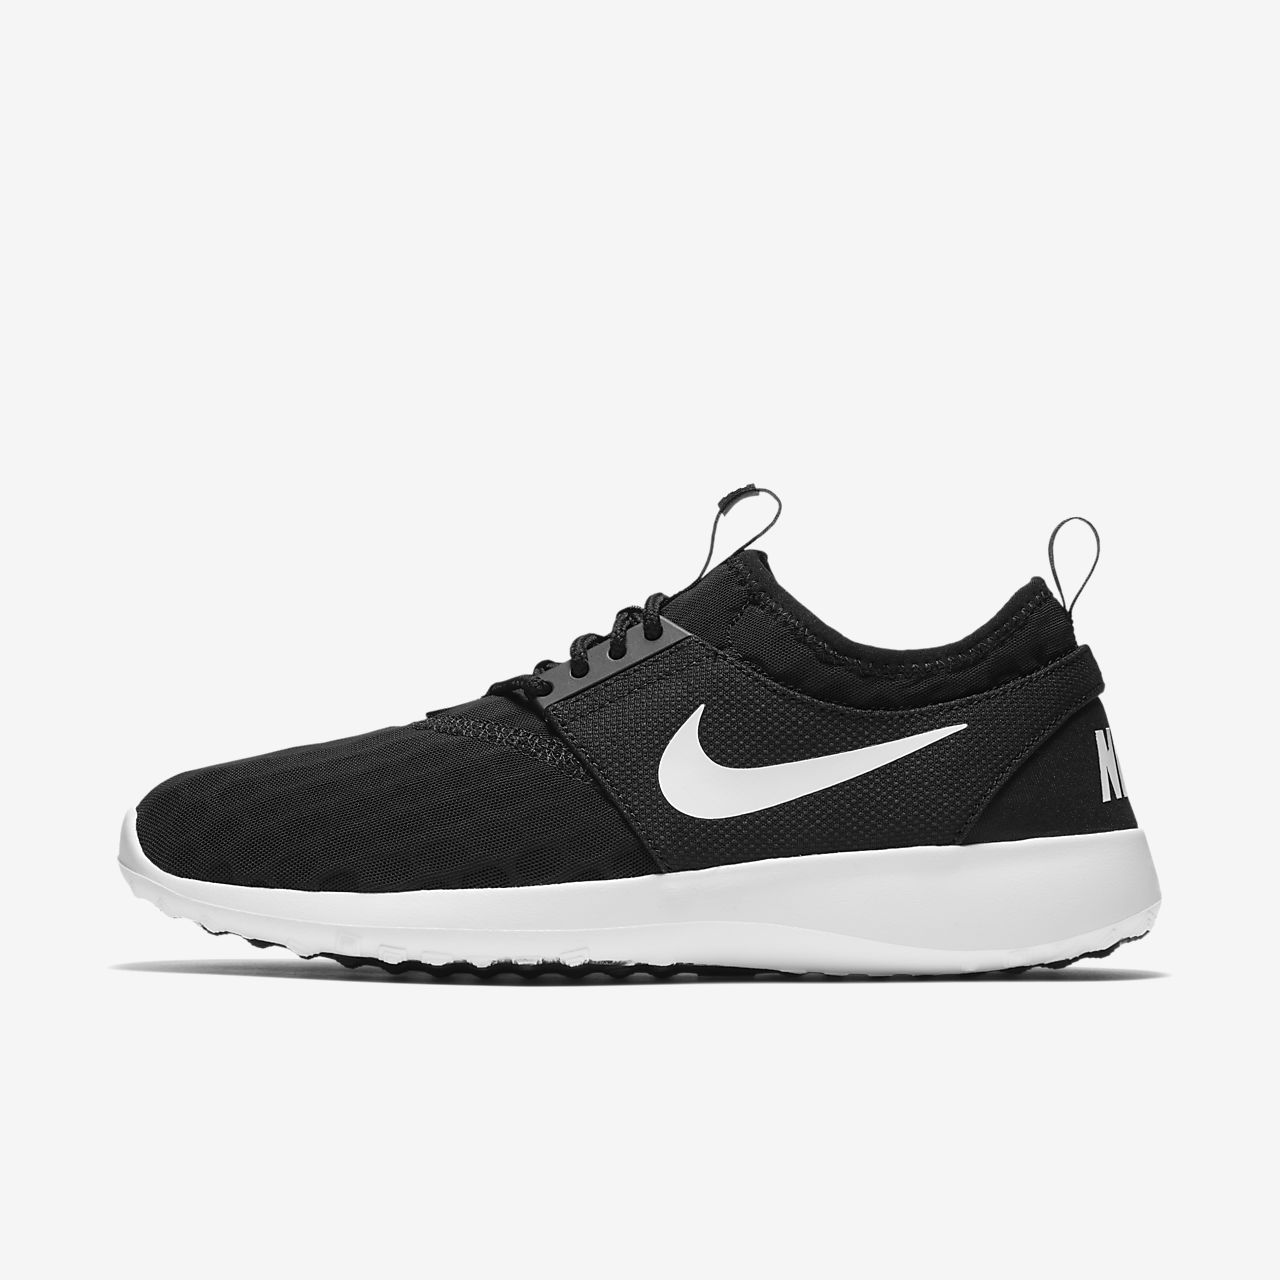 881dd6c133f719 Low Resolution Nike Juvenate Women s Shoe Nike Juvenate Women s Shoe